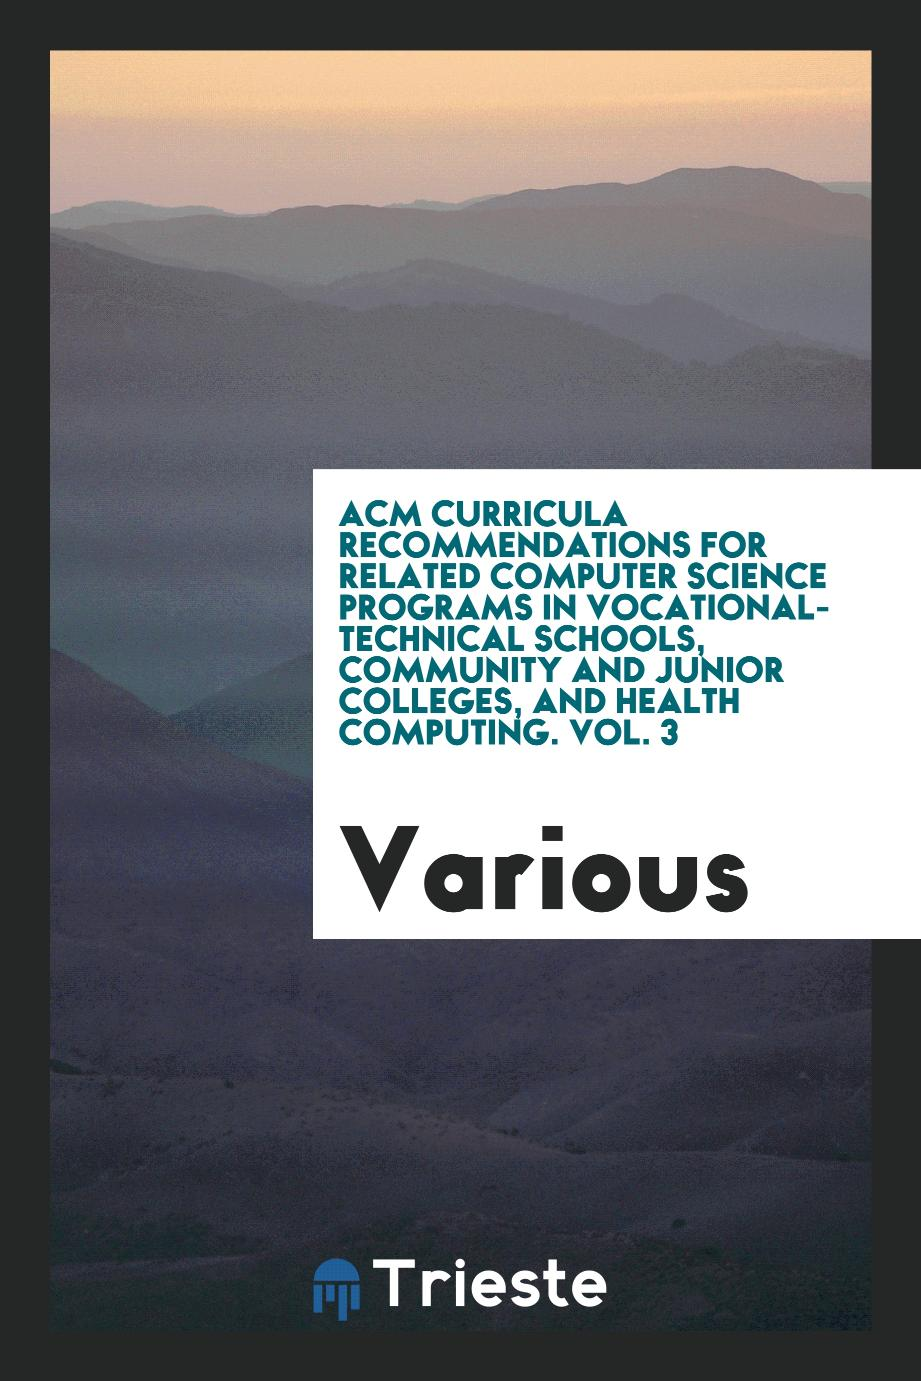 ACM curricula recommendations for related computer science programs in vocational-technical schools, community and junior colleges, and health computing. Vol. 3